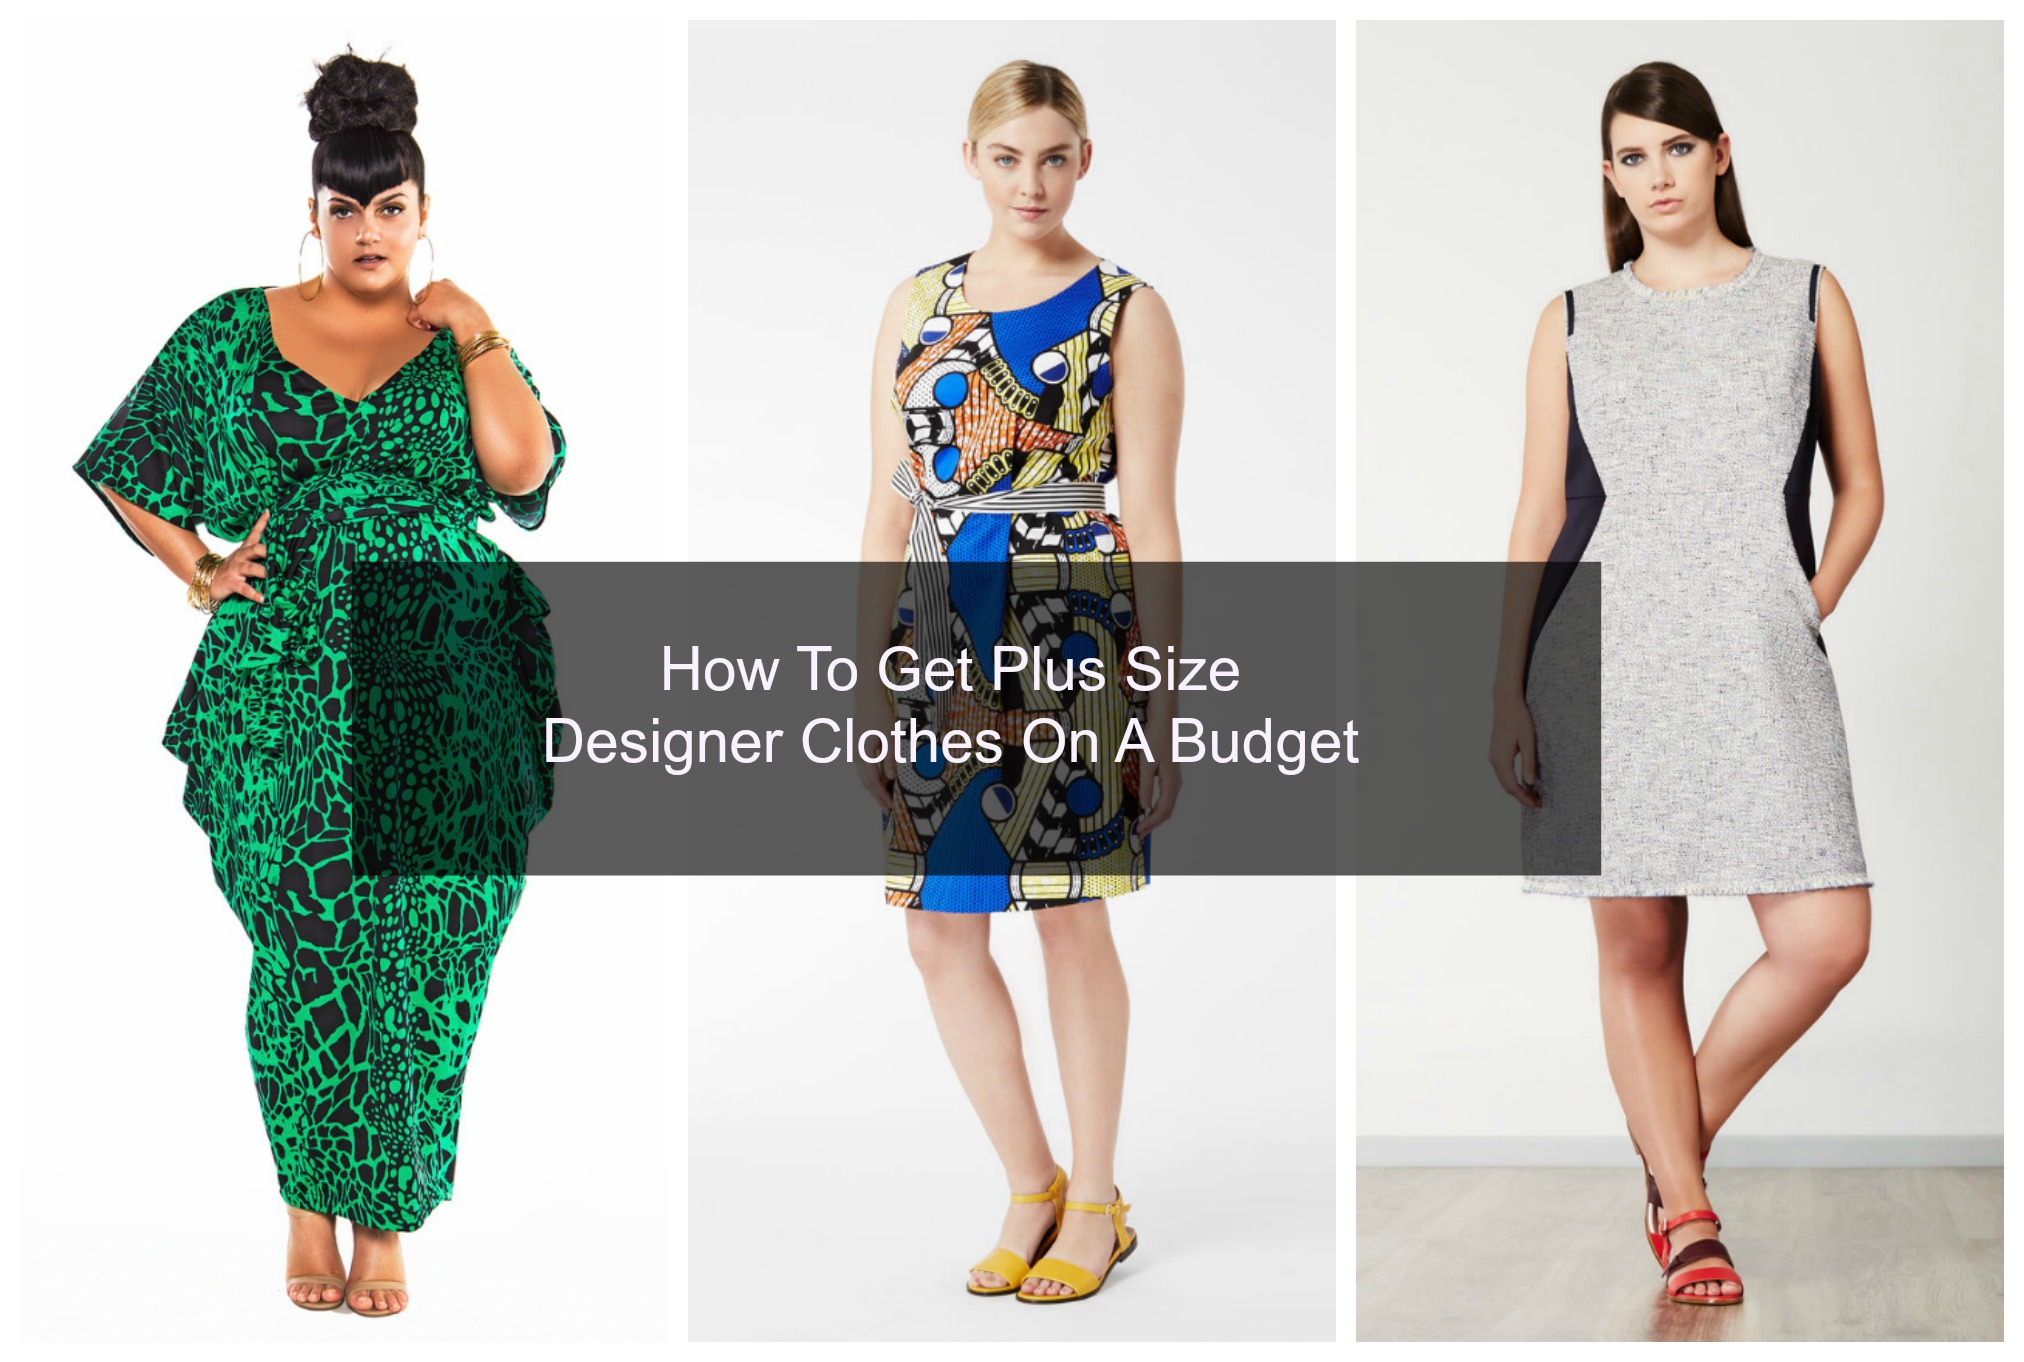 how to score plus size designer clothes on a budget